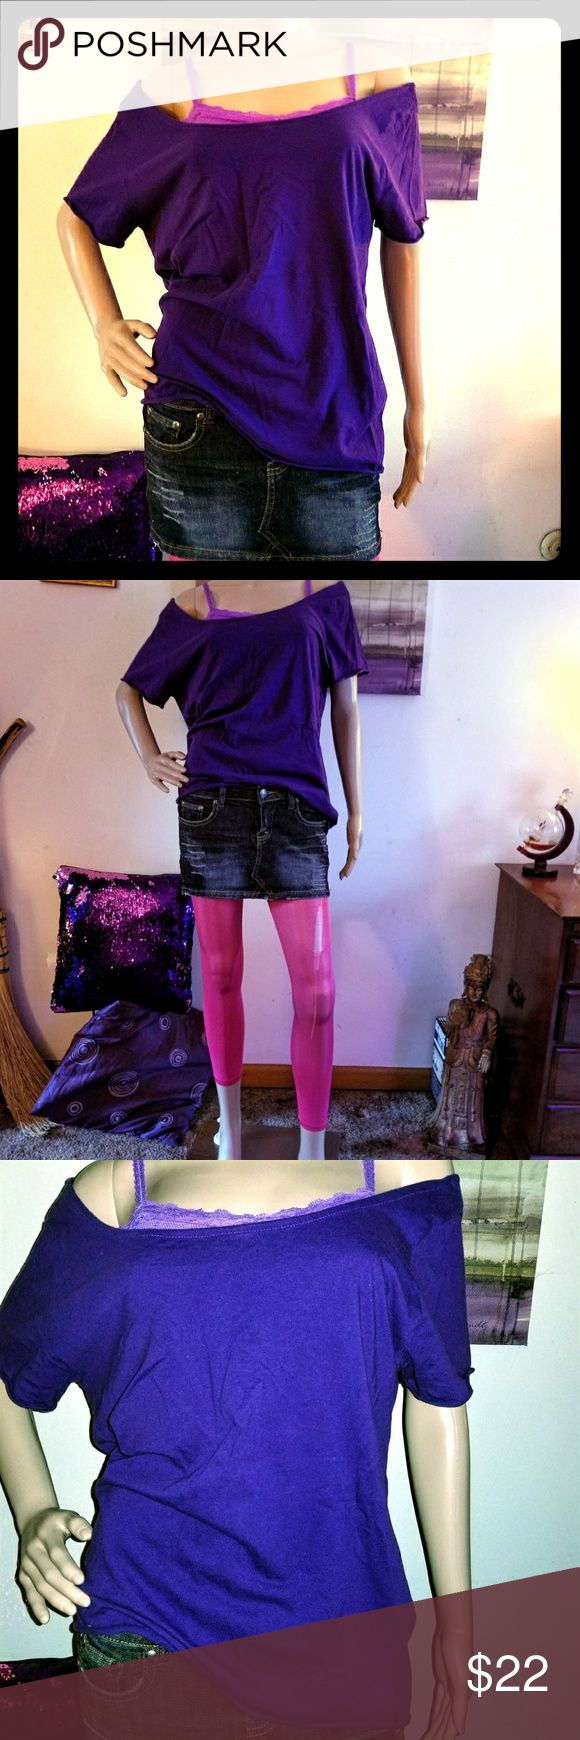 """Off The Shoulder️ 80's Style Raw Hem Tee Shirt NWOT! This awesome royal purple, off the shoulder tee shirt is everything great about the 80's & very on trend. Featuring a raw hem w/ plenty of """"scoop"""" in the neck & shoulders for a One-Shoulder look or pulled off of both! Perfect w/ a Bralette! 100% Cotton w/ longer hem & thin, soft material. Not cropped or too boxy so you can belt it, layer, or wear it w/ leggings. Love this but it's too big for me. True to Size & Perfect Condition. Mannequin…"""